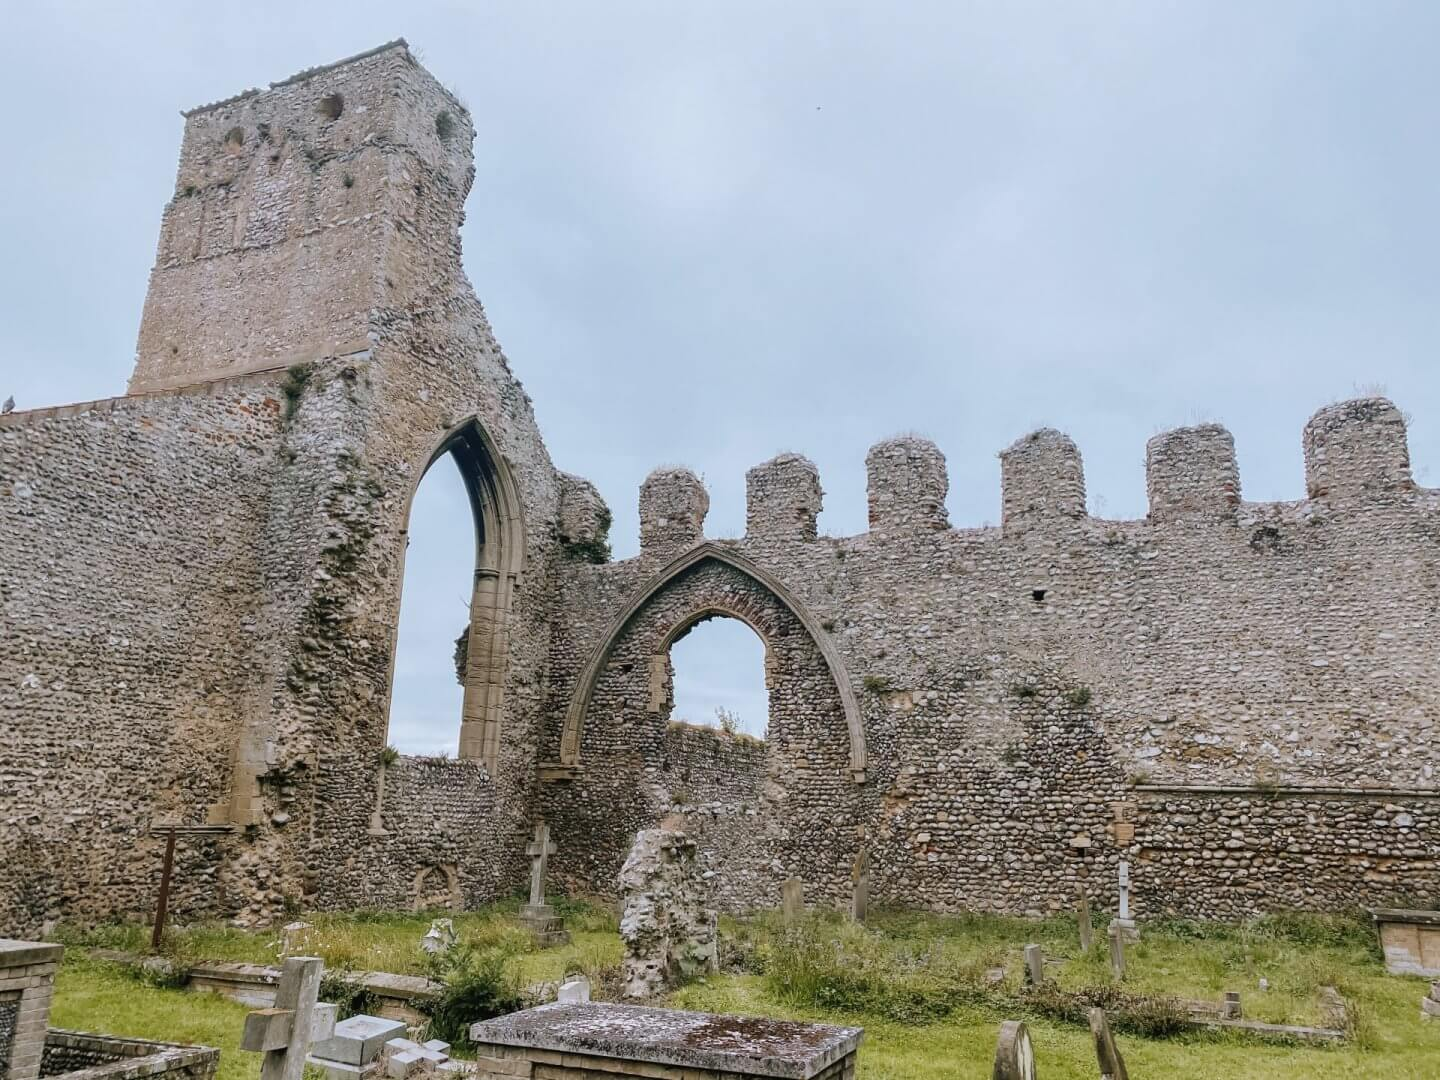 Image of the ruins of Weybourne Priory, Norfolk